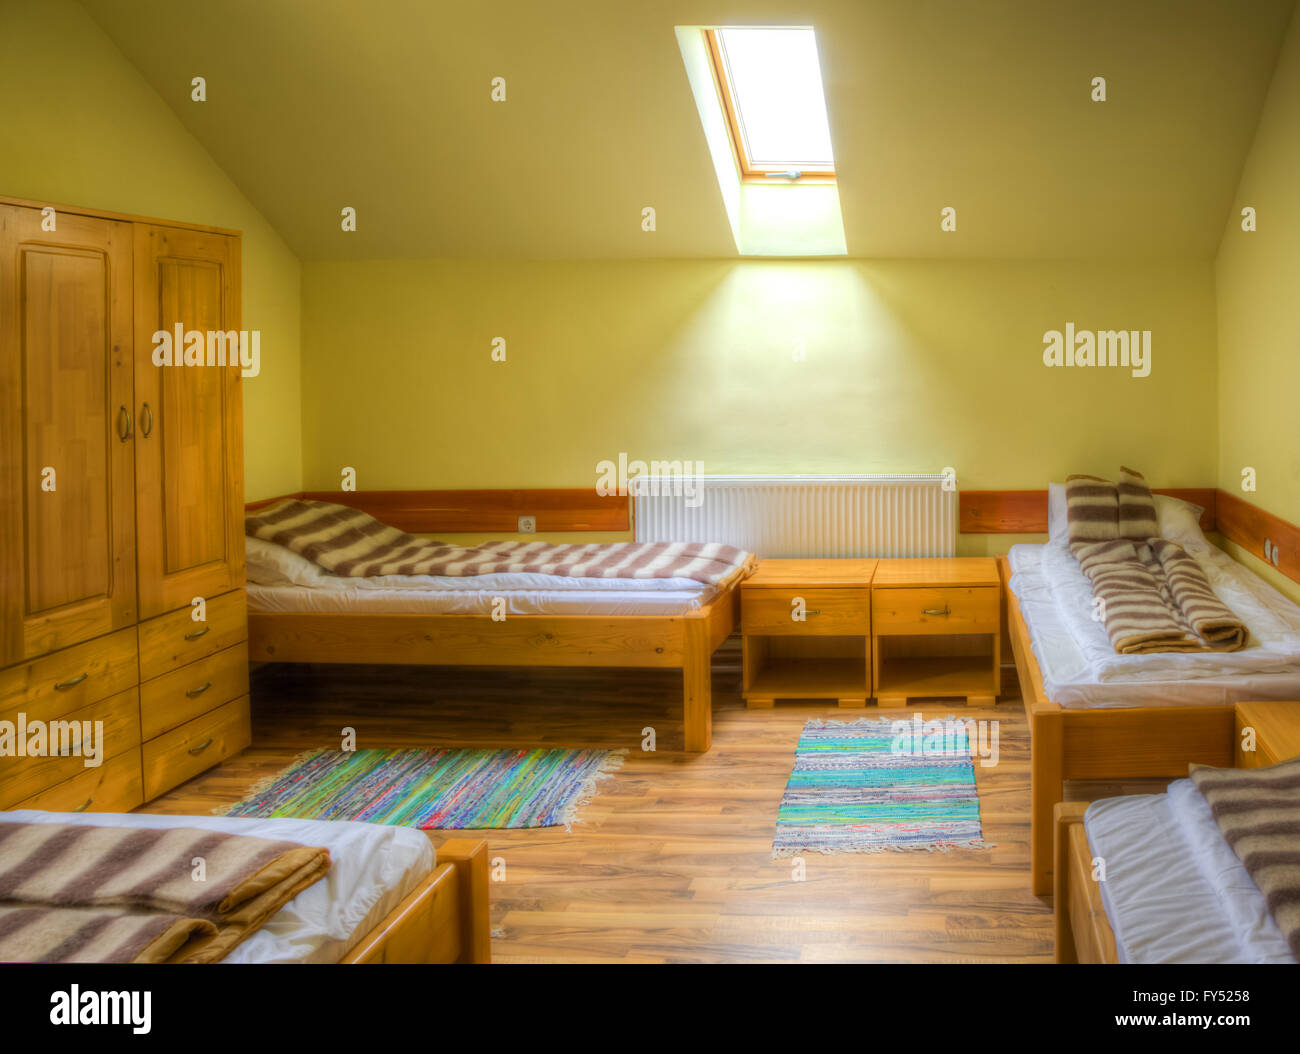 Clean hostel room with beds and wardrobe - Stock Image